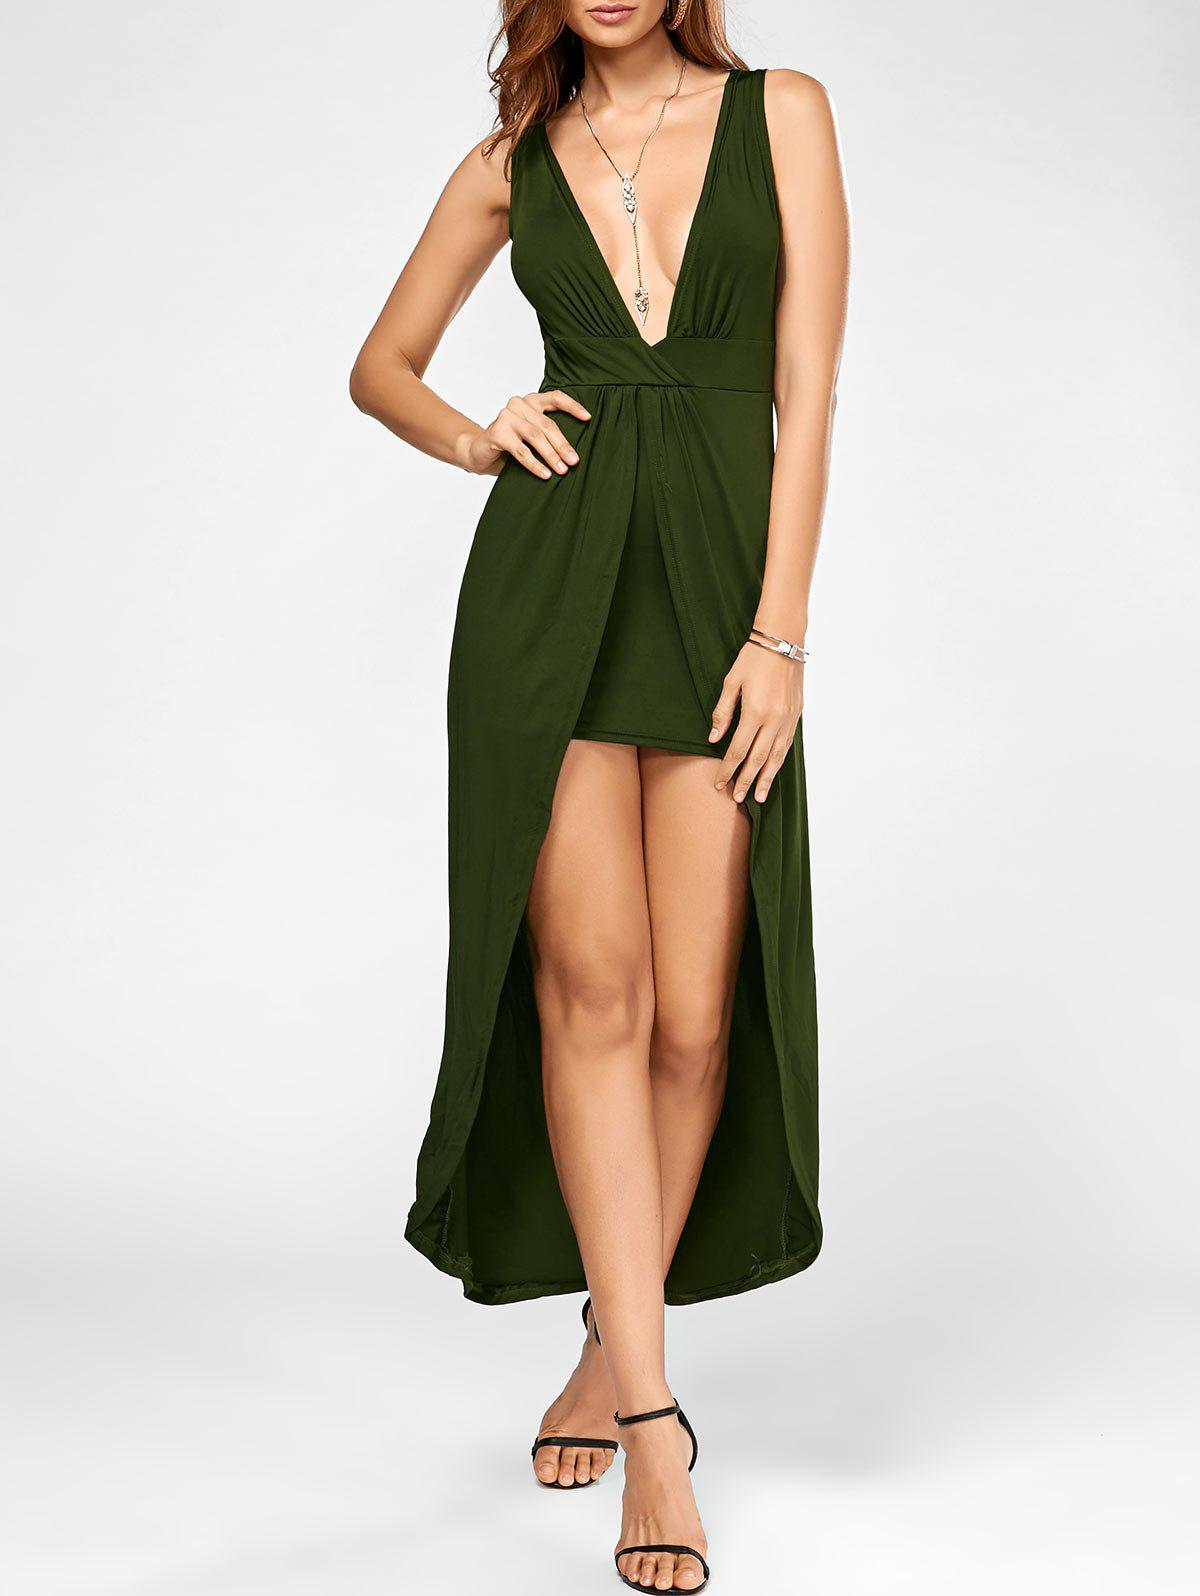 Plunging Neck High Low Maxi Party Dress - ARMY GREEN M